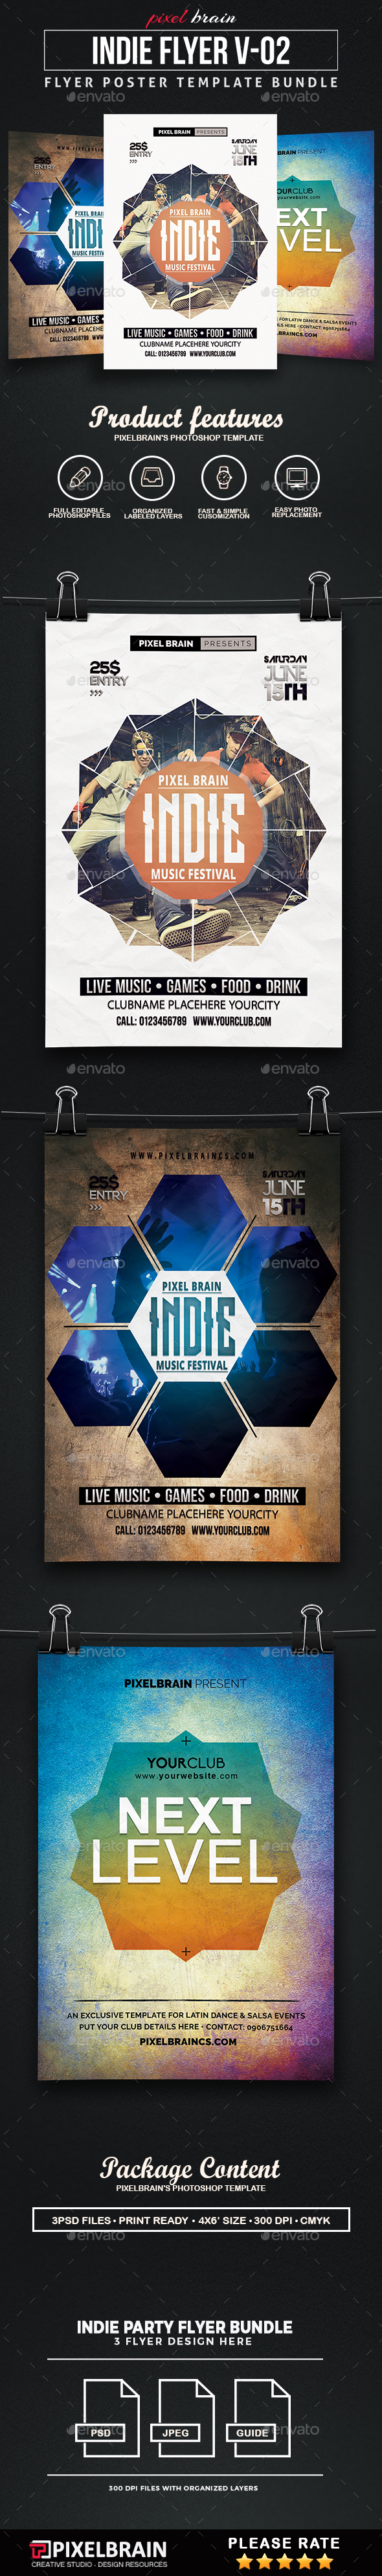 indie Party Flyer Template Bundle Vol - 02 - Clubs & Parties Events